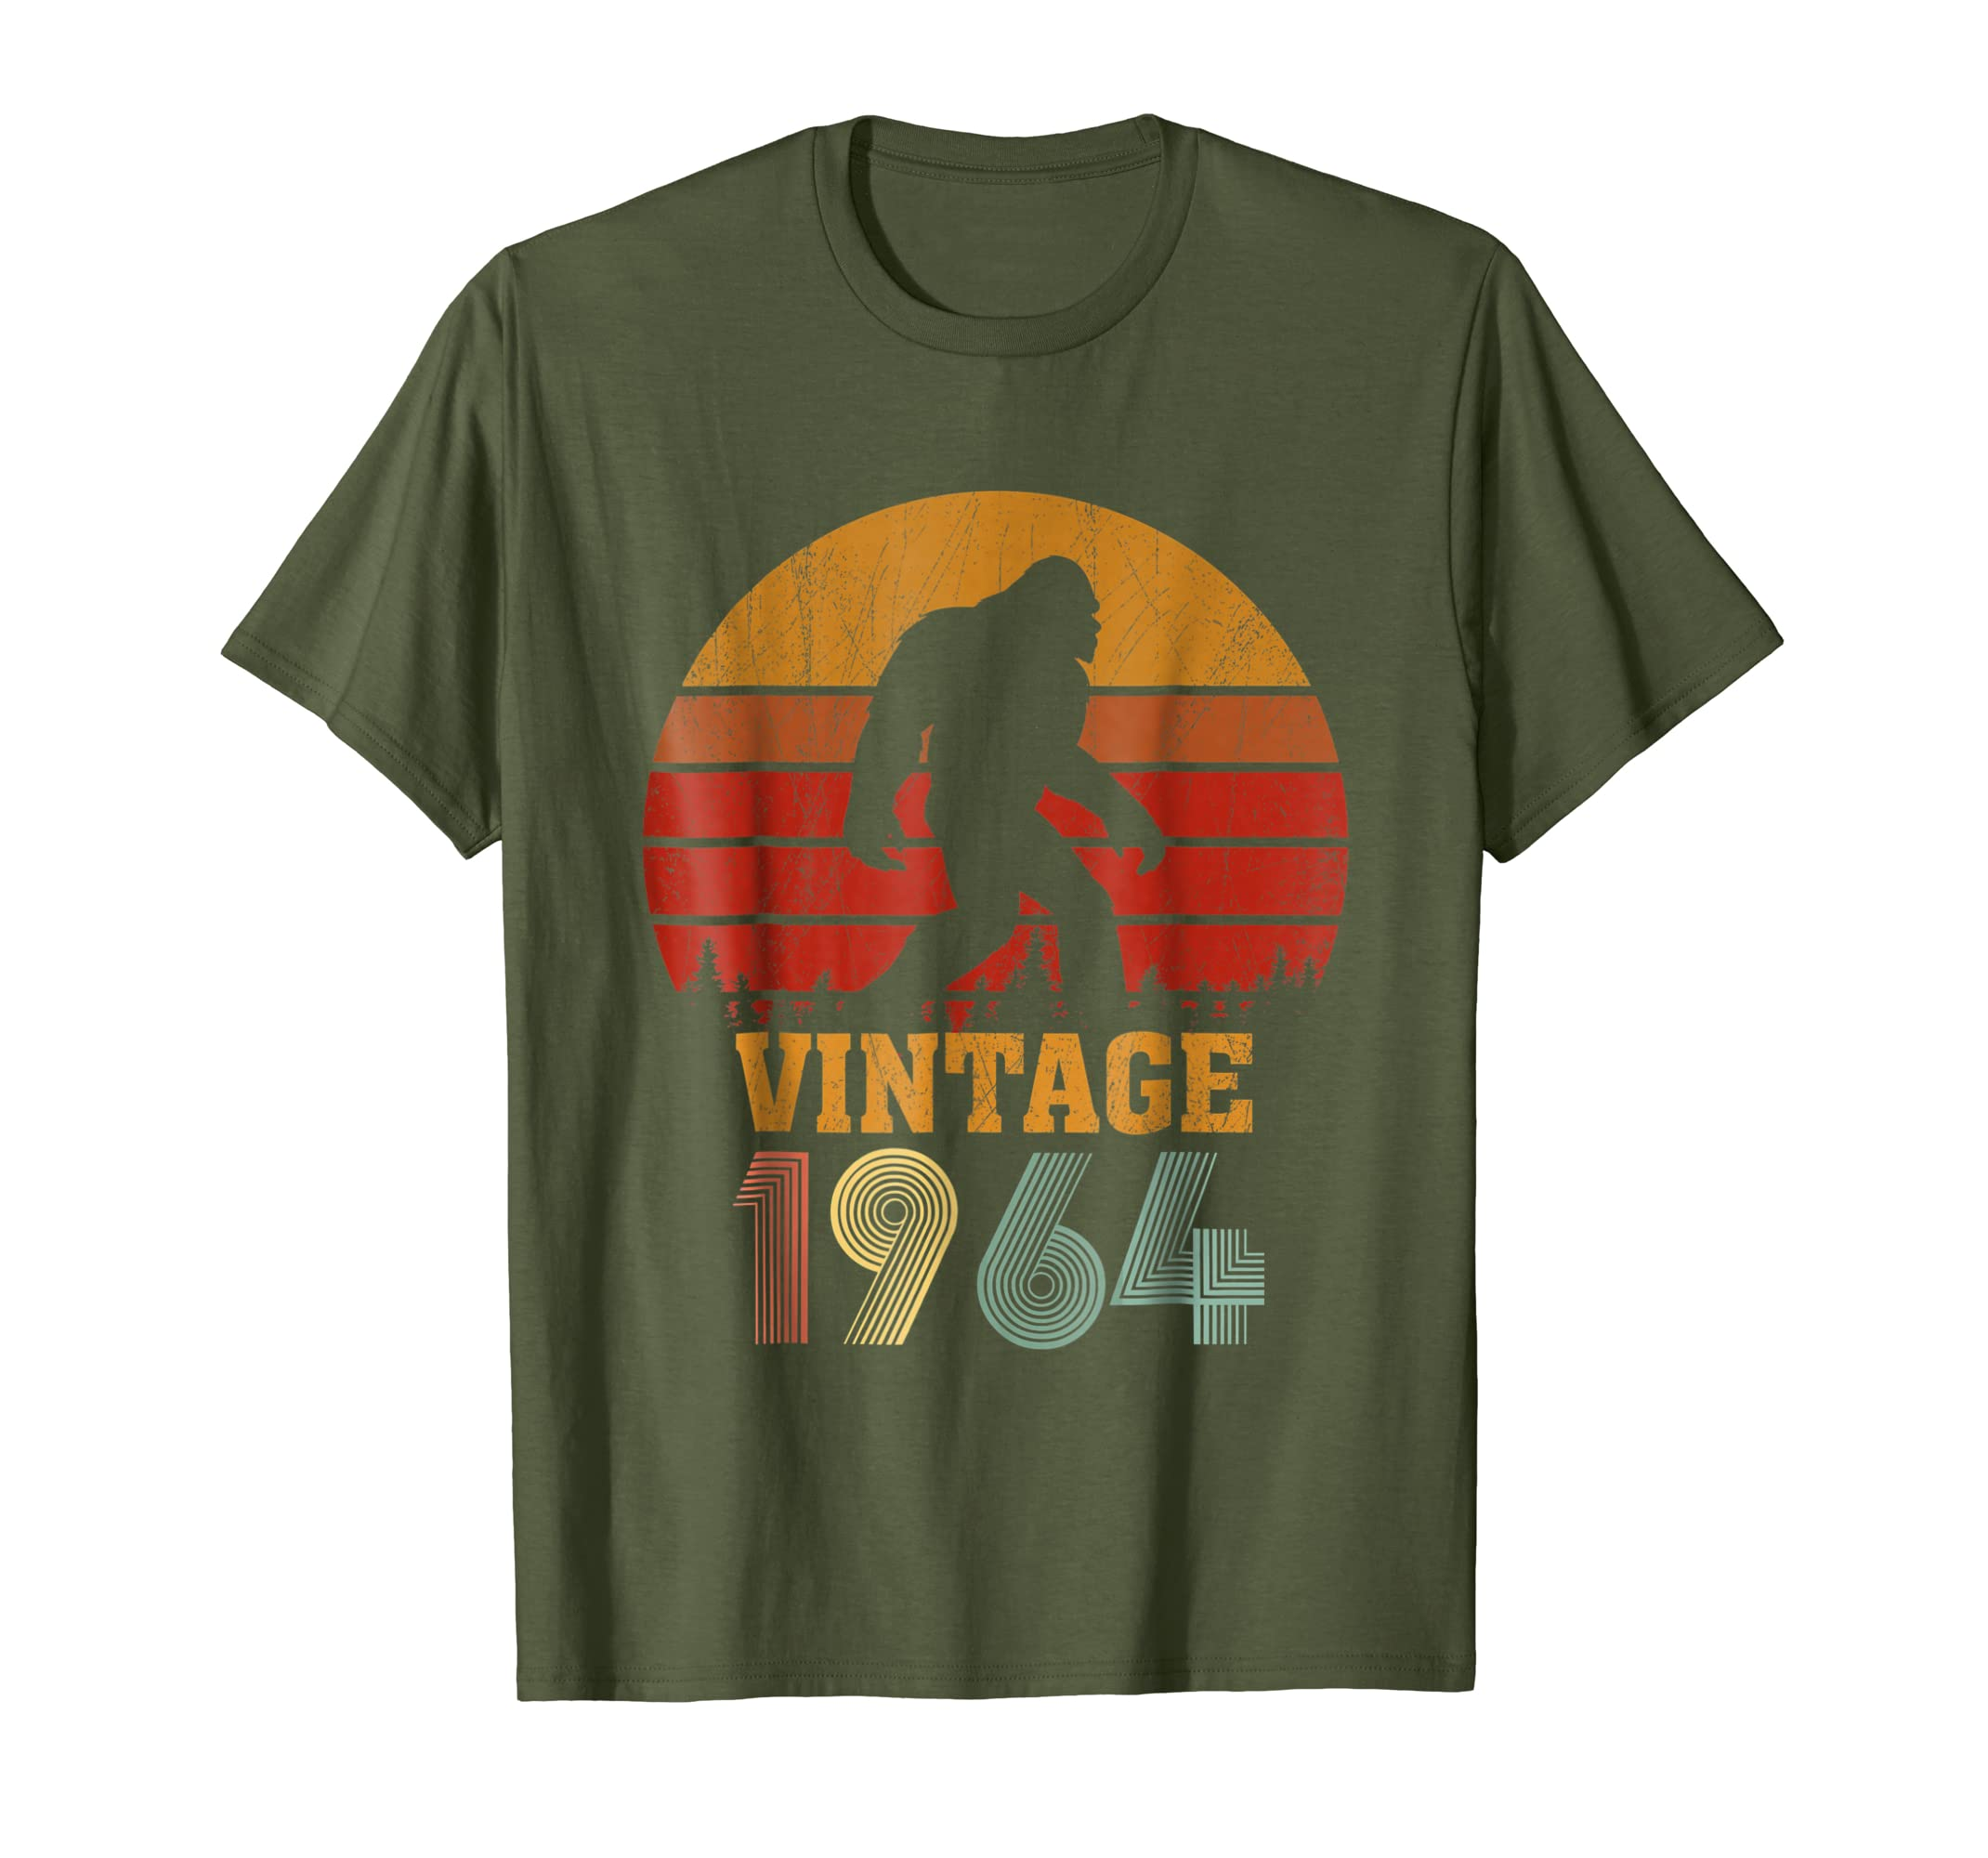 54 Years Old 1964 Vintage 54th Birthday T-shirt Bigfoot-SFL